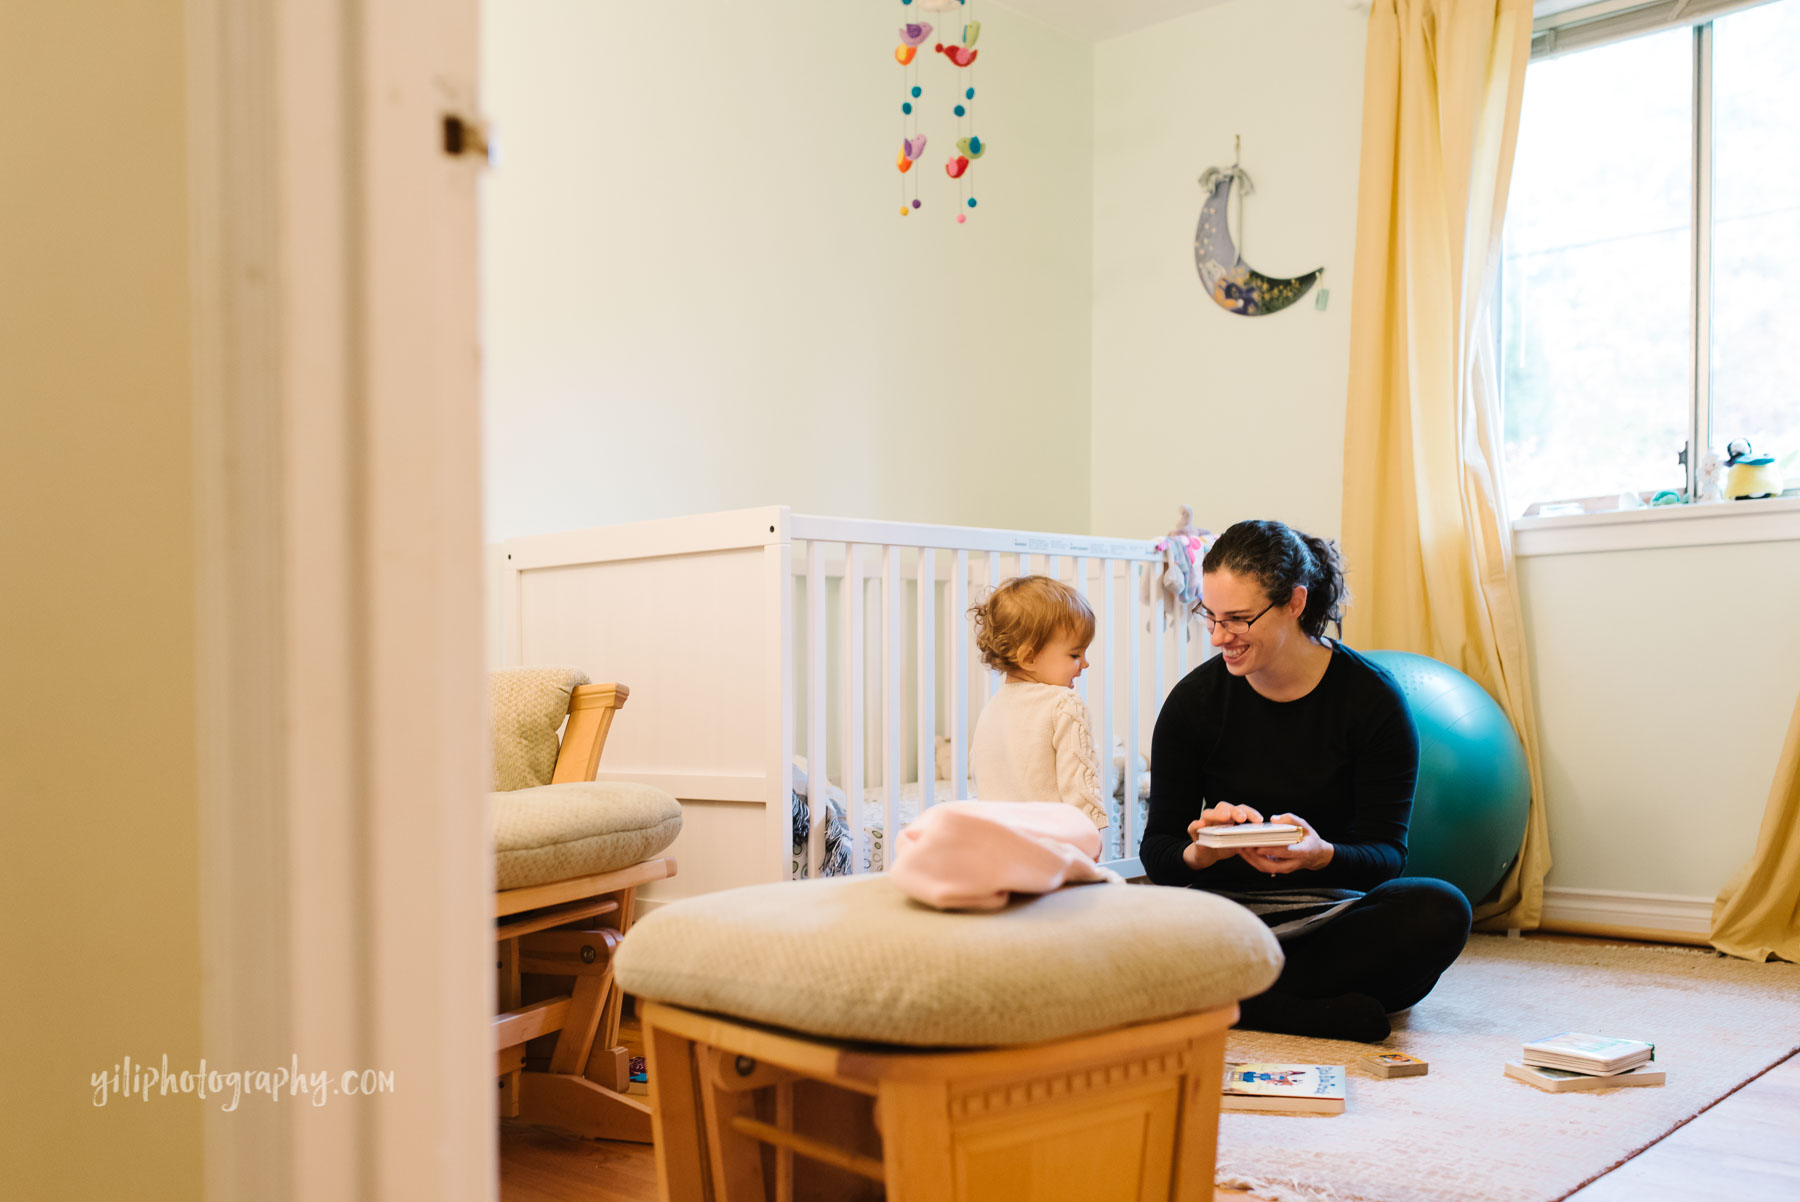 Mom reading with toddler daughter in nursery